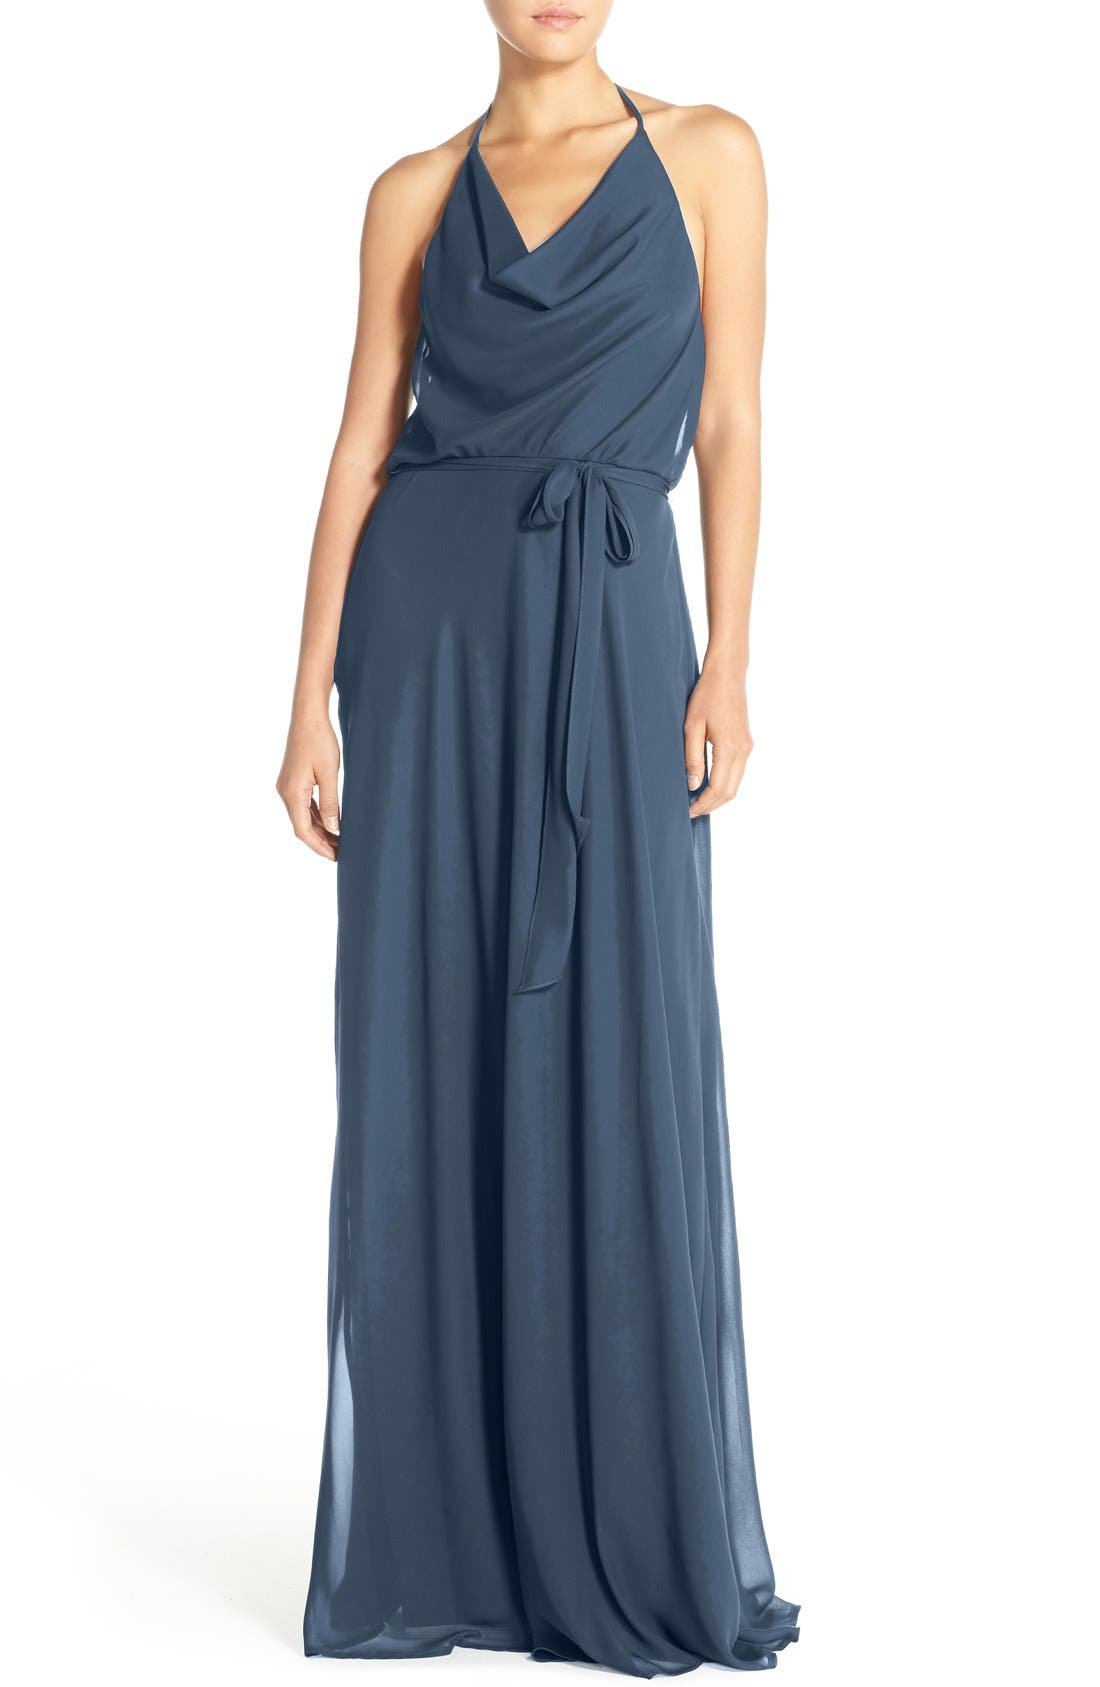 Alternate Image 1 Selected - nouvelle AMSALE 'Alyssa' Cowl Neck Chiffon Halter Gown